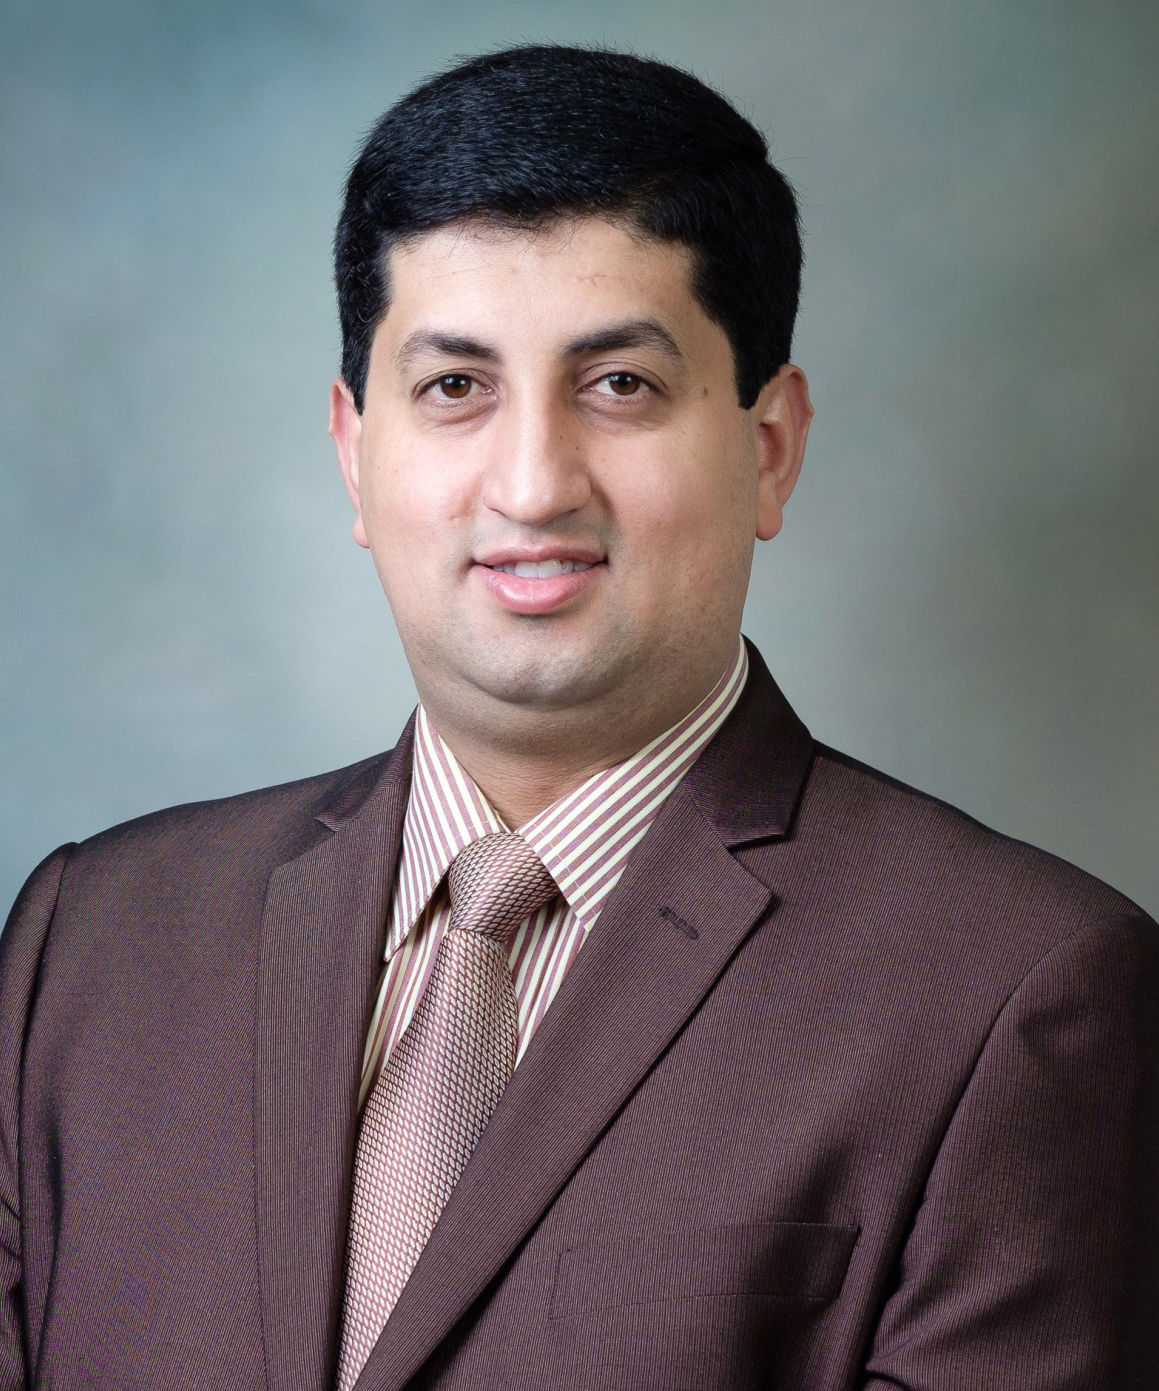 Dr. Ismail Tabash